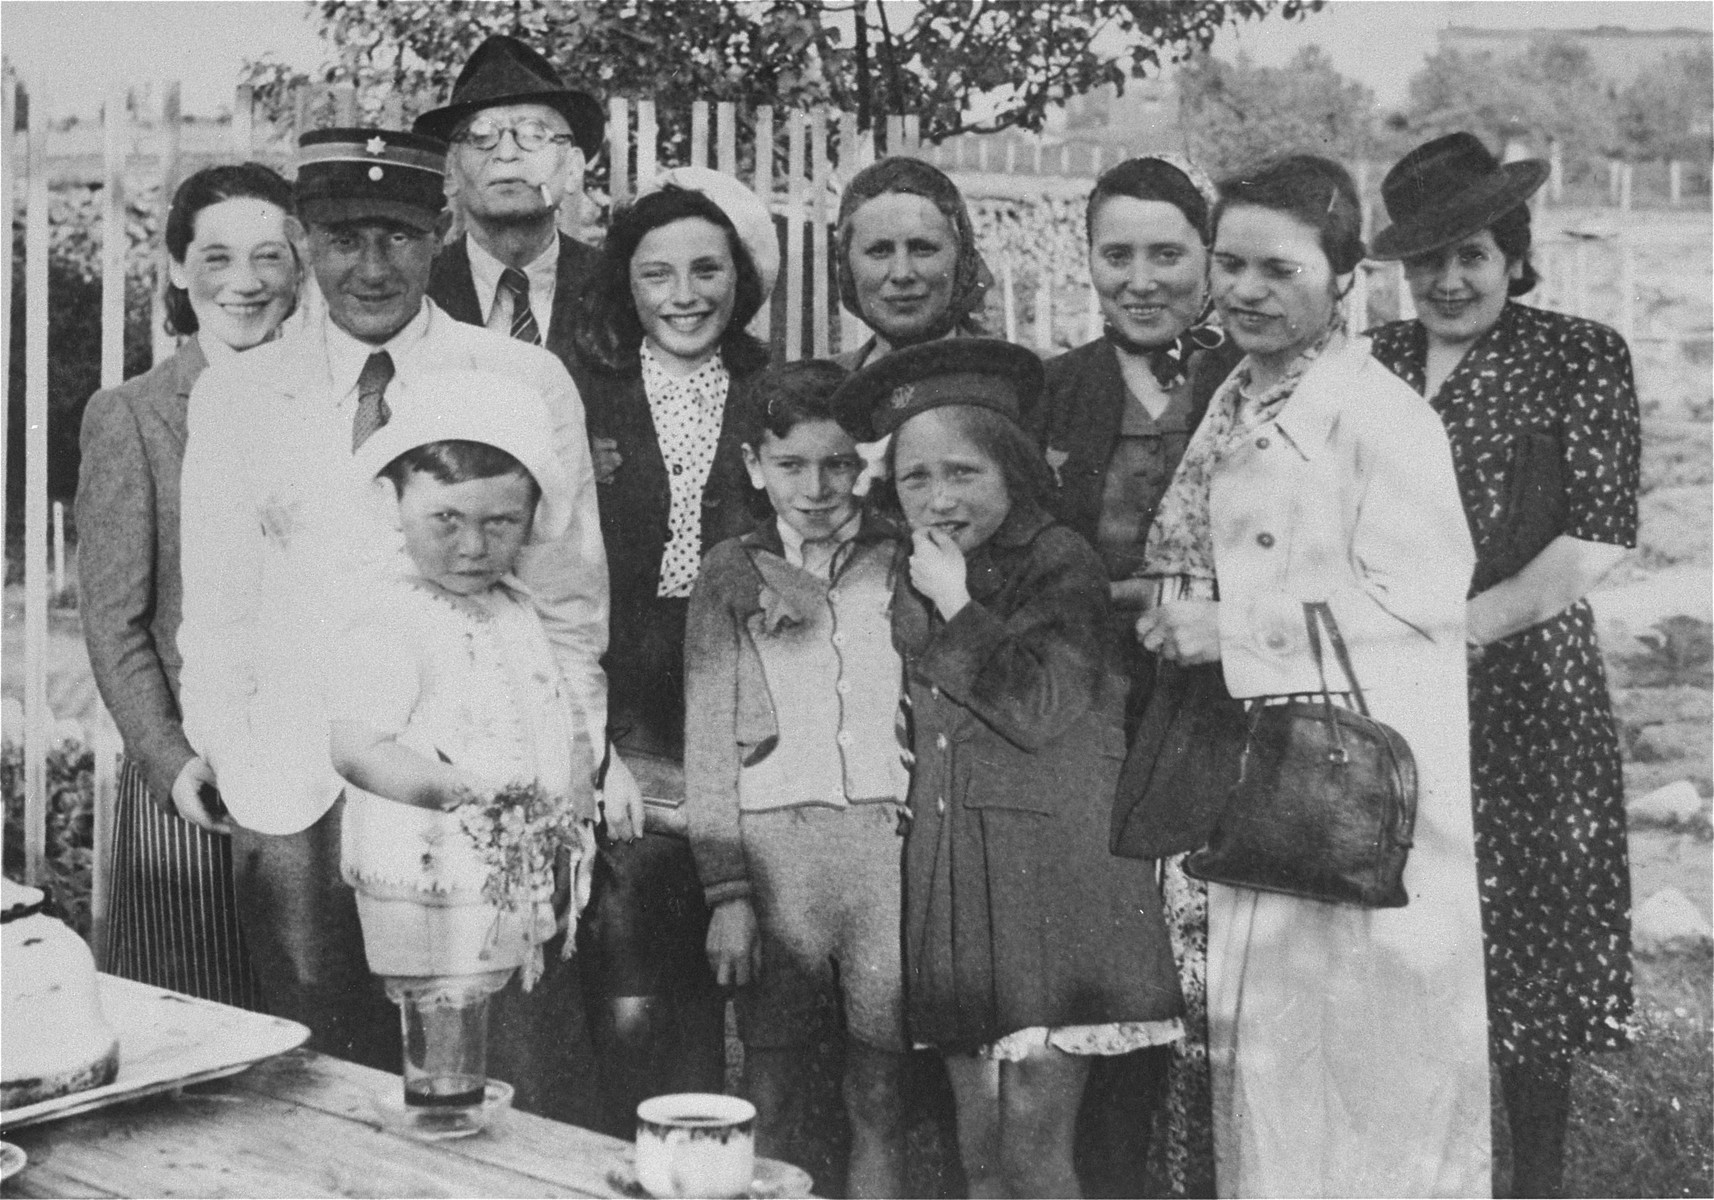 Mordechai Chaim Rumkowski, chairman of the Lodz ghetto Jewish Council and Zygmunt Reingold, head of food supply, pose with family members in the ghetto.